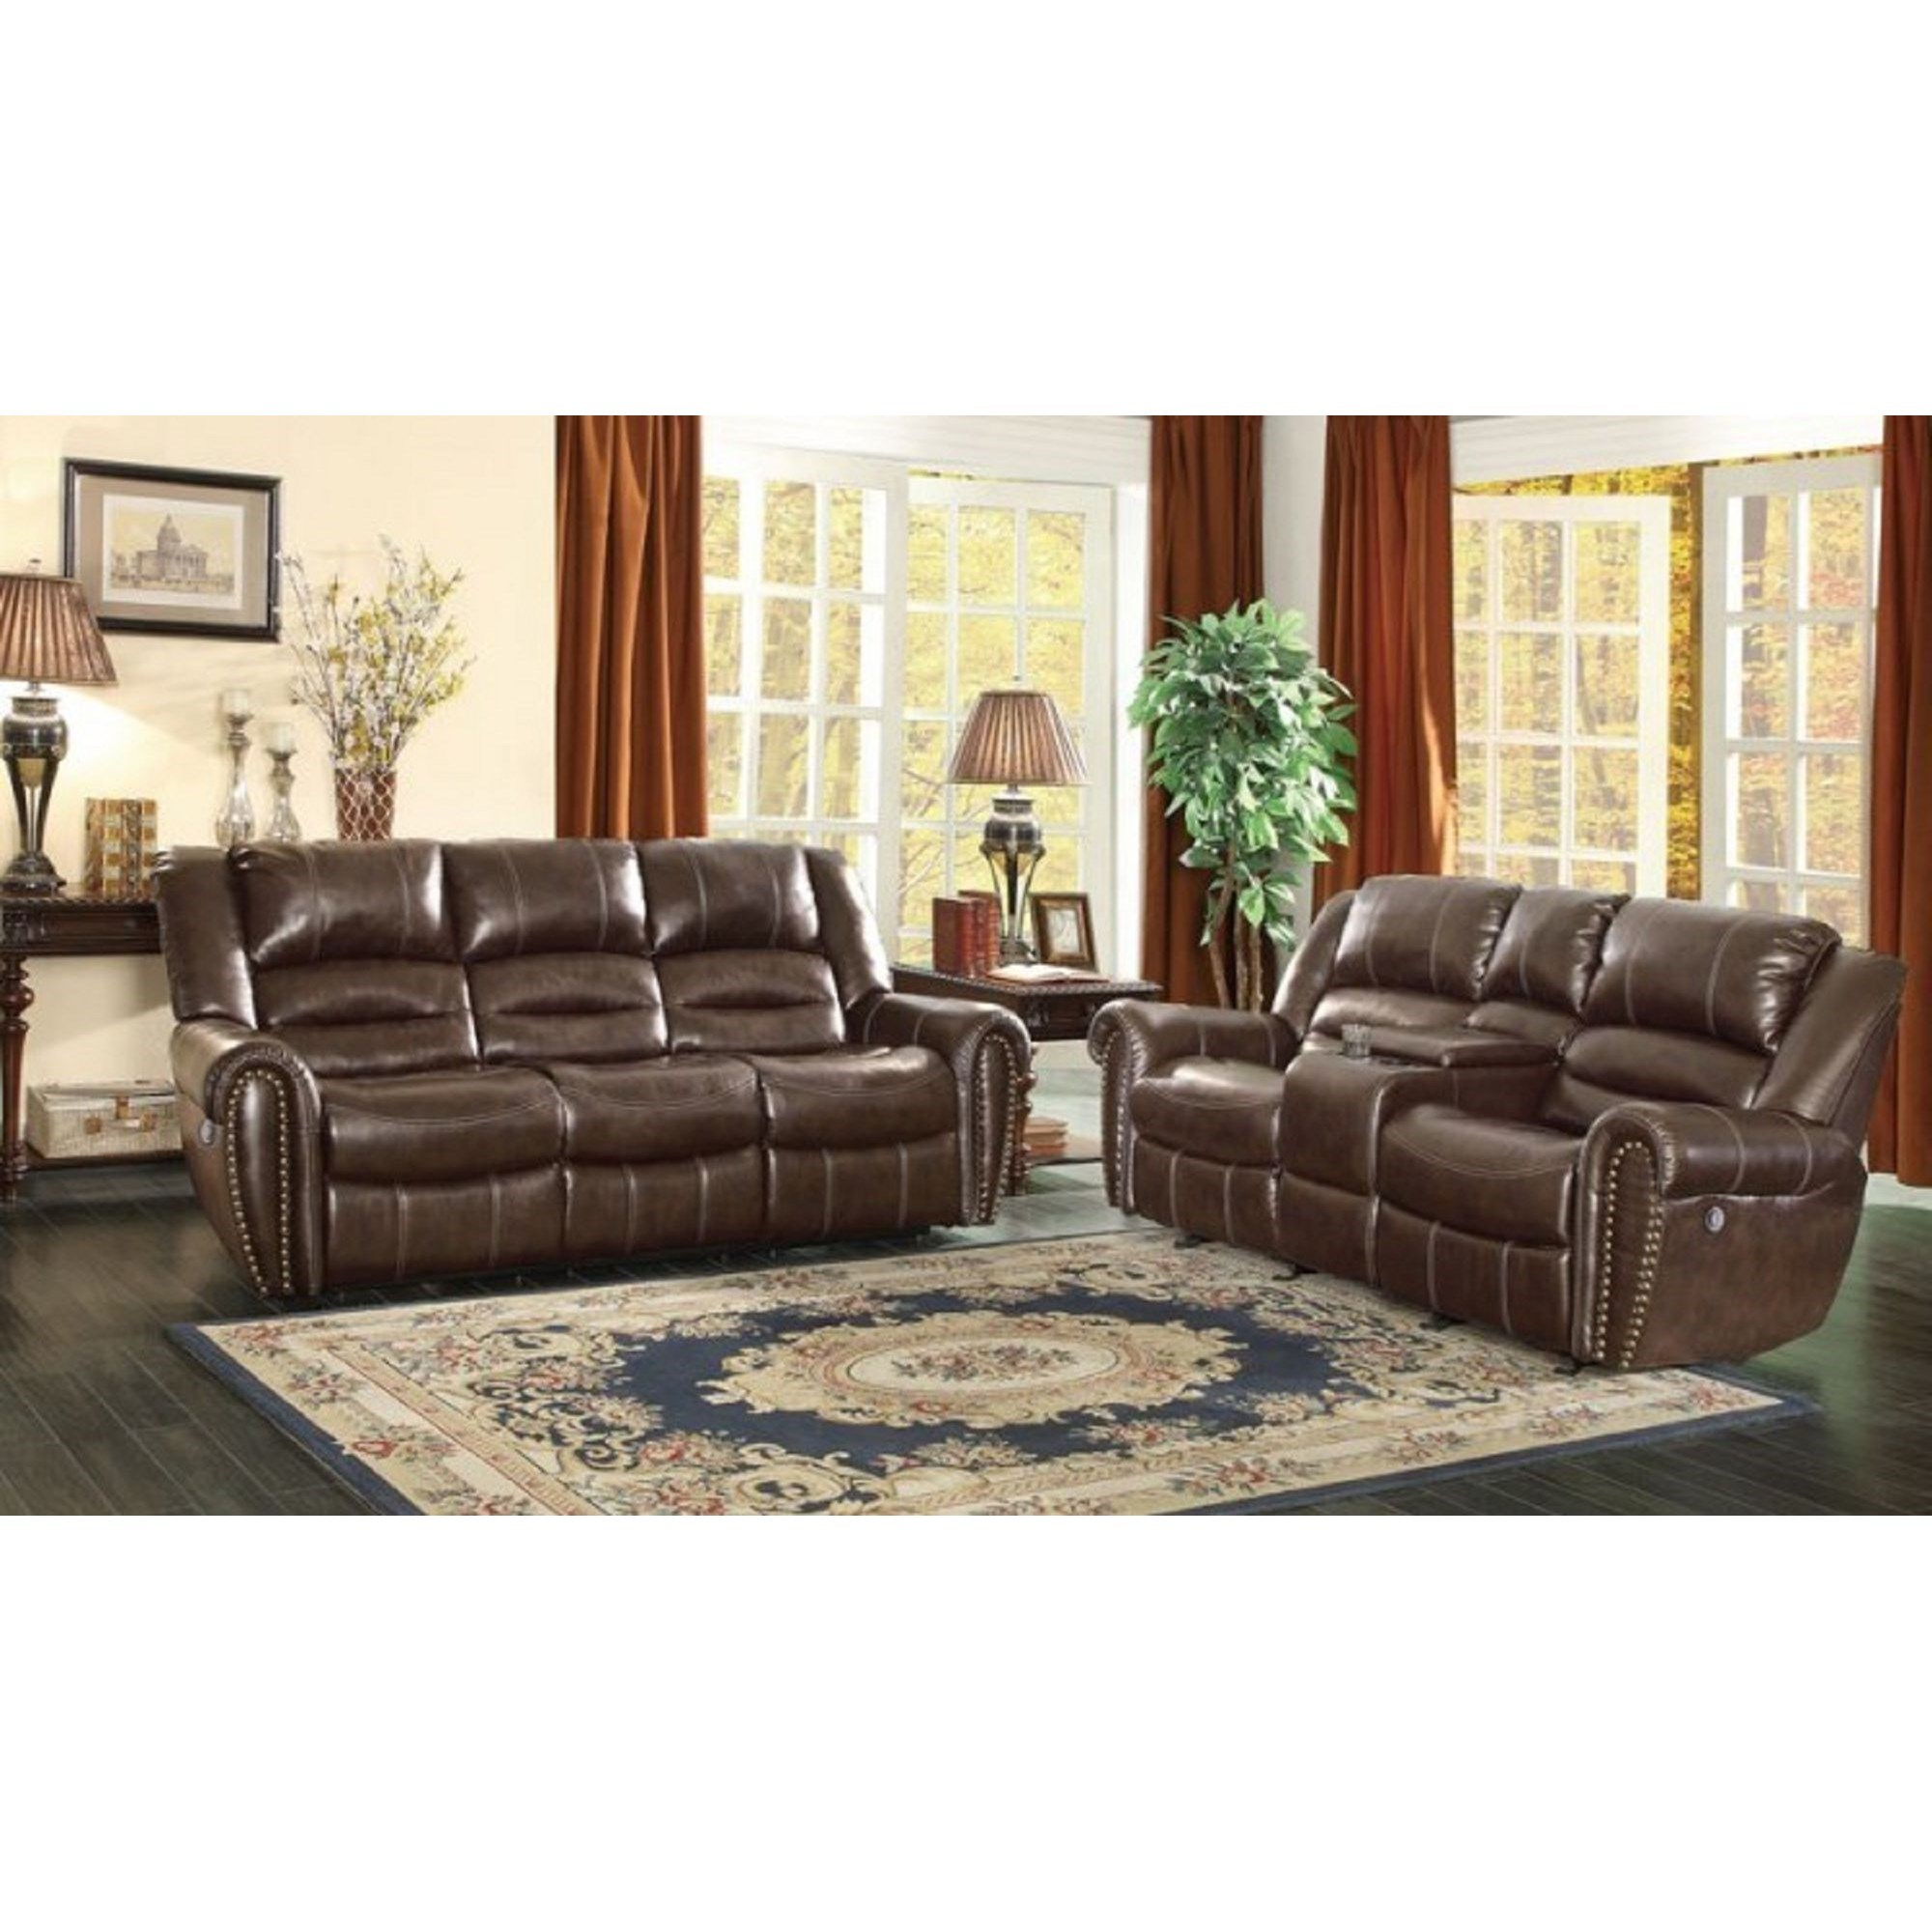 Center Hill Power Reclining Living Room Group by Homelegance at Simply Home by Lindy's